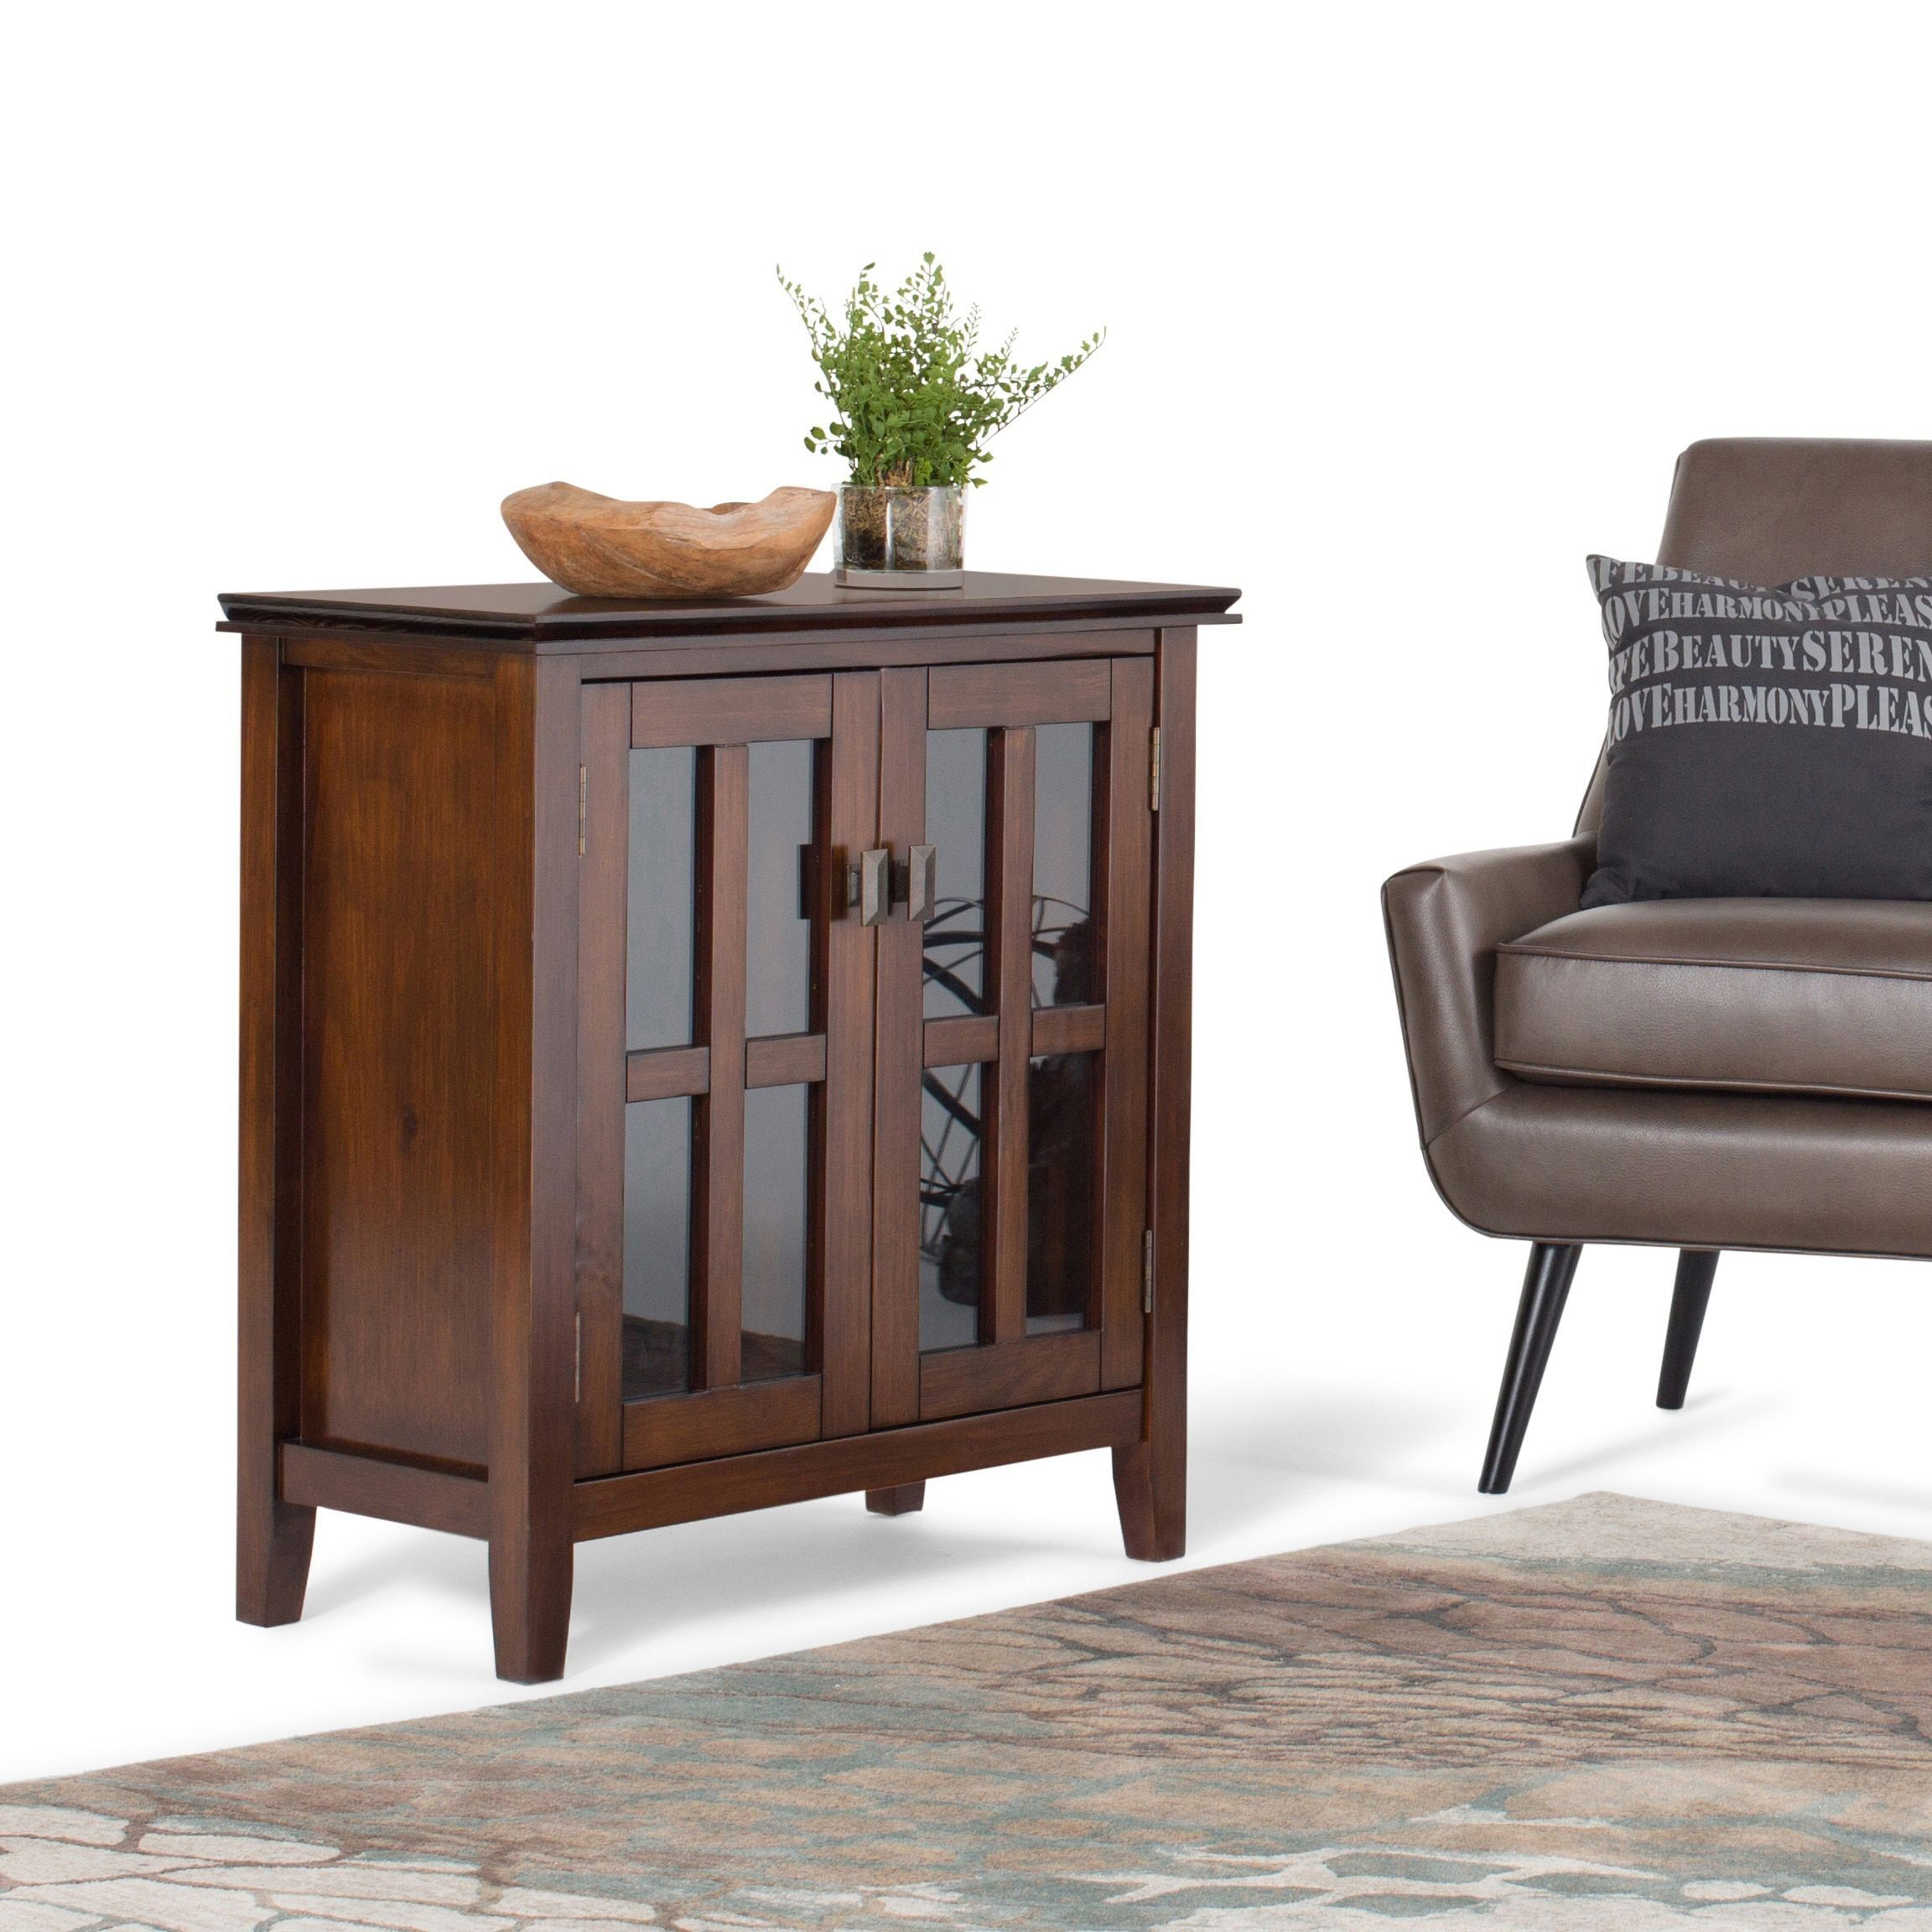 Fresh End Tables with Storage Cabinet